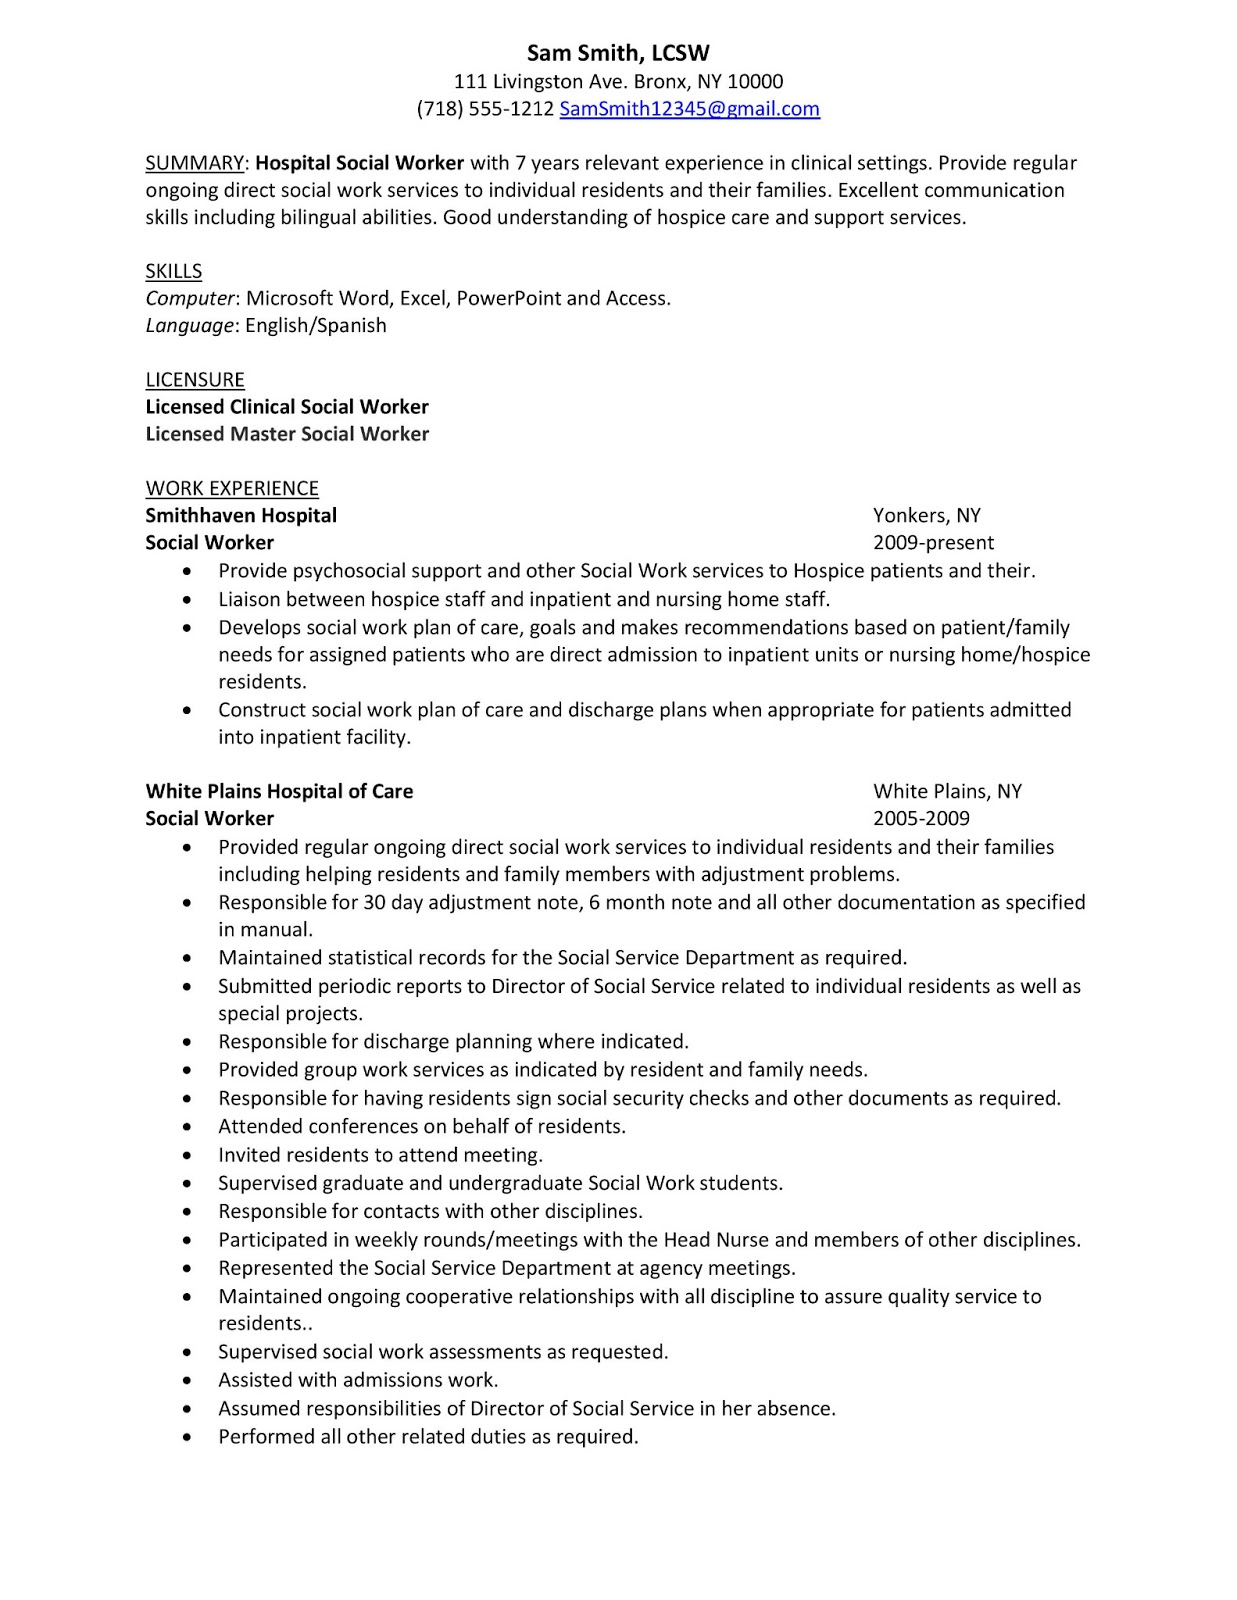 pharmacist resume sample myoptimalcareer. Resume Example. Resume CV Cover Letter